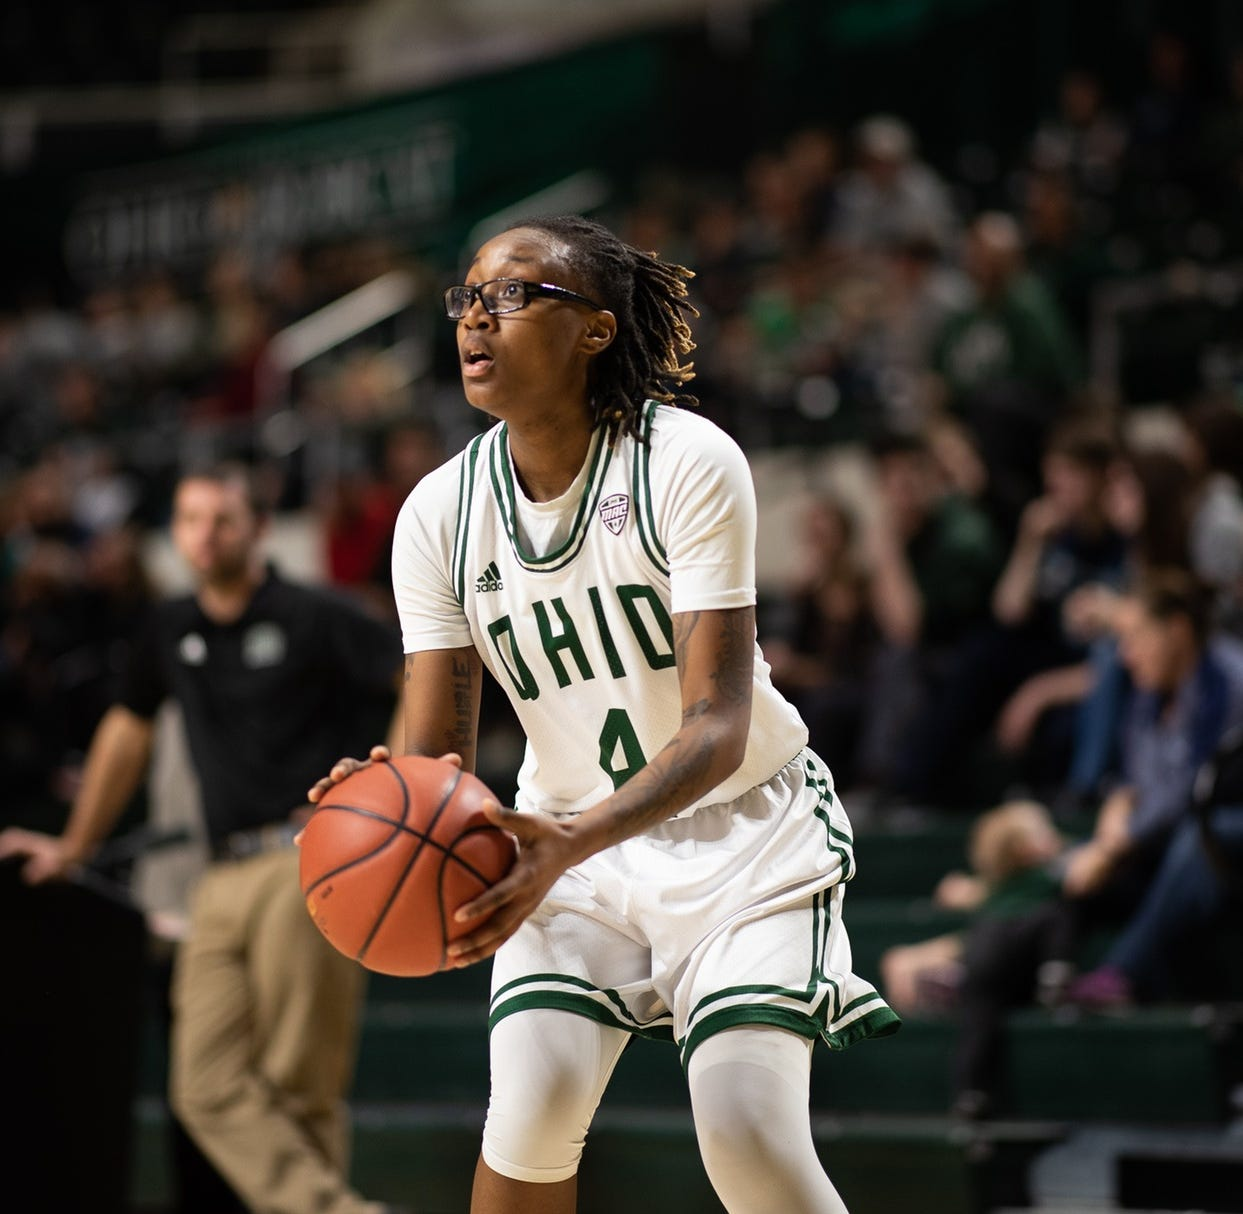 Go Figure! Ohio U's Erica Johnson named MAC Freshman of the Year